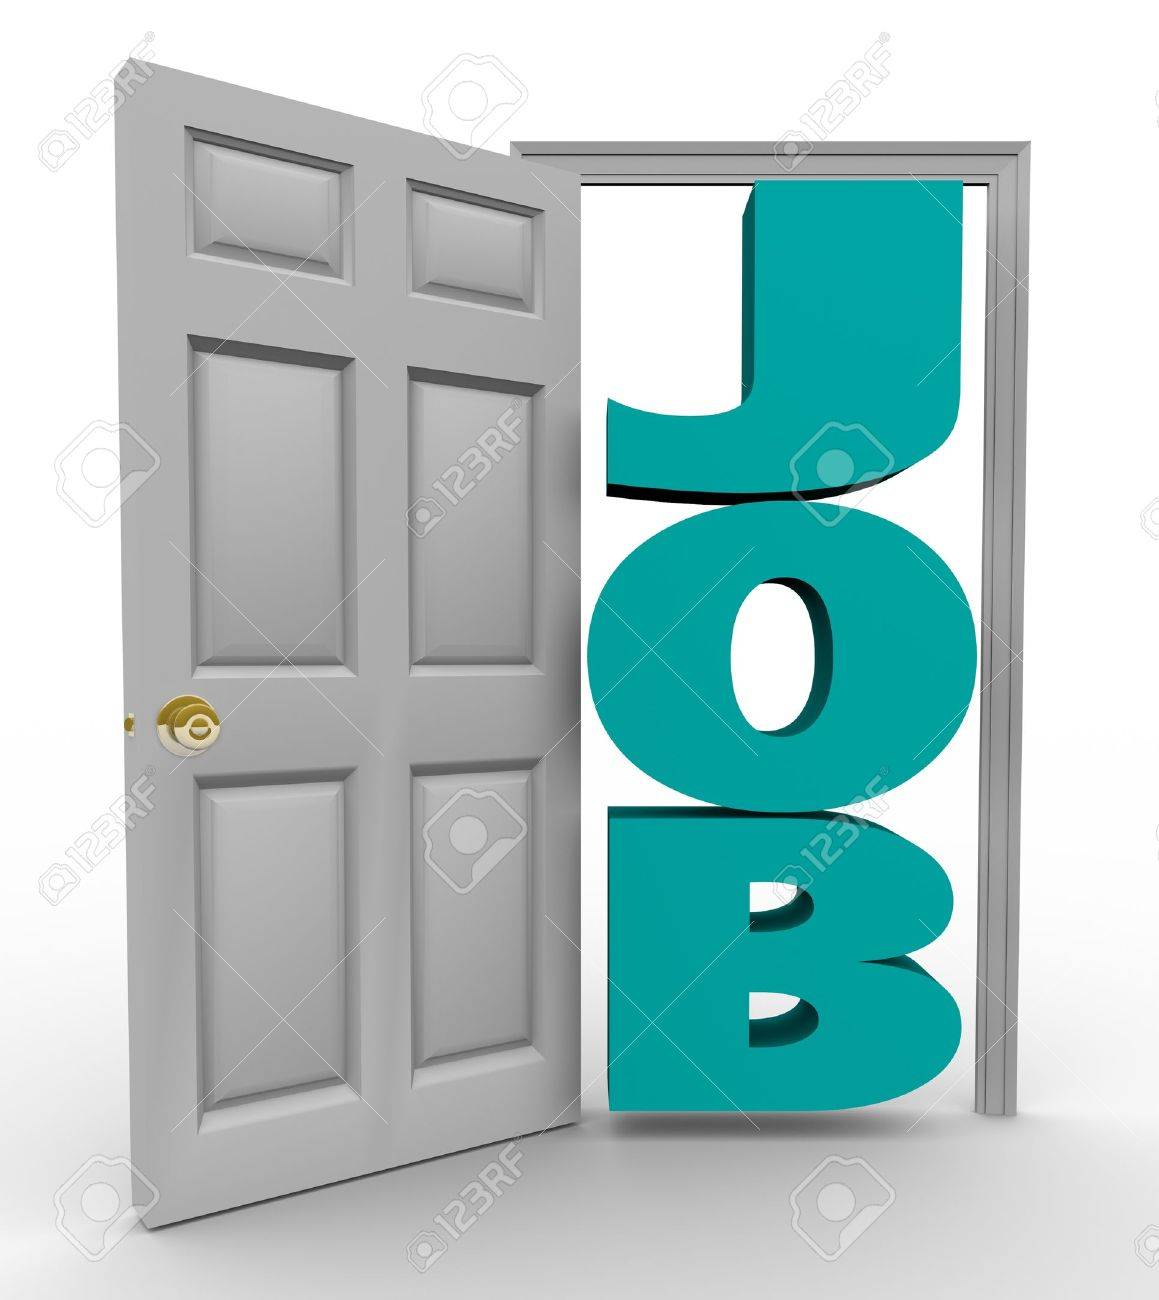 a doorway opens to reveal the word job representing a successful a doorway opens to reveal the word job representing a successful search for employment and